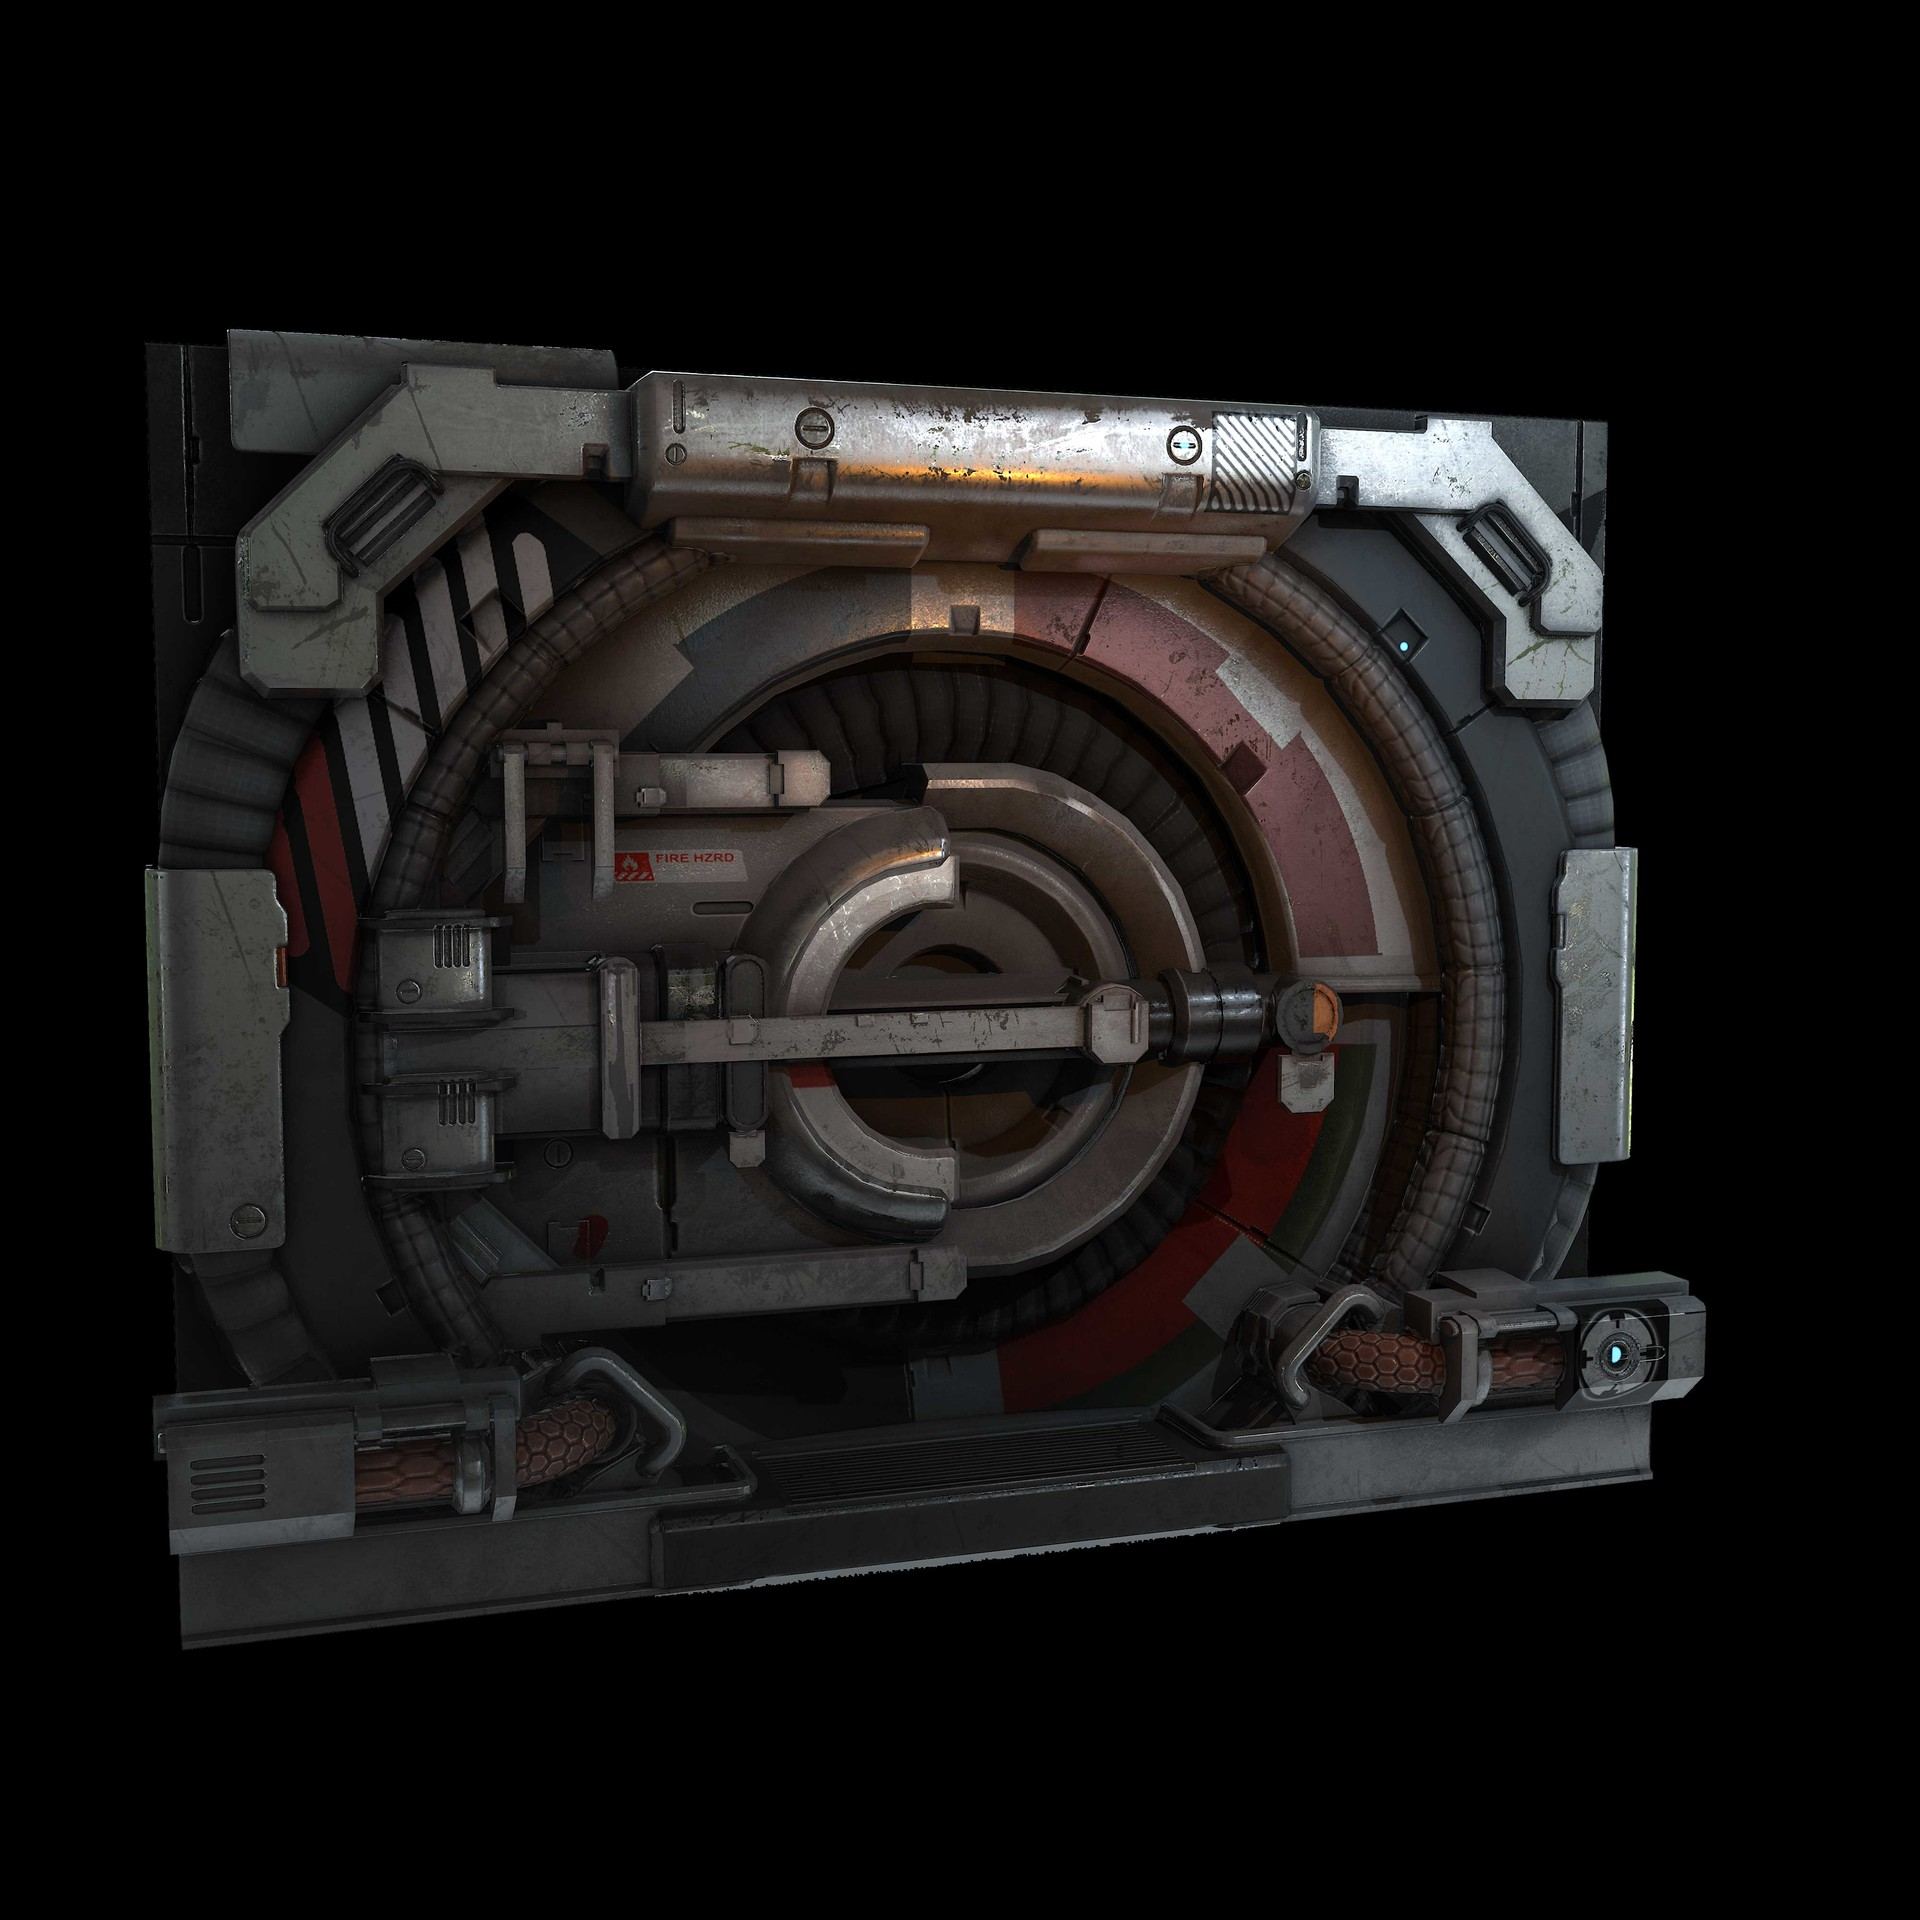 Tyler smith circledoorrender02 & Tyler Smith - Game Art Circular Door